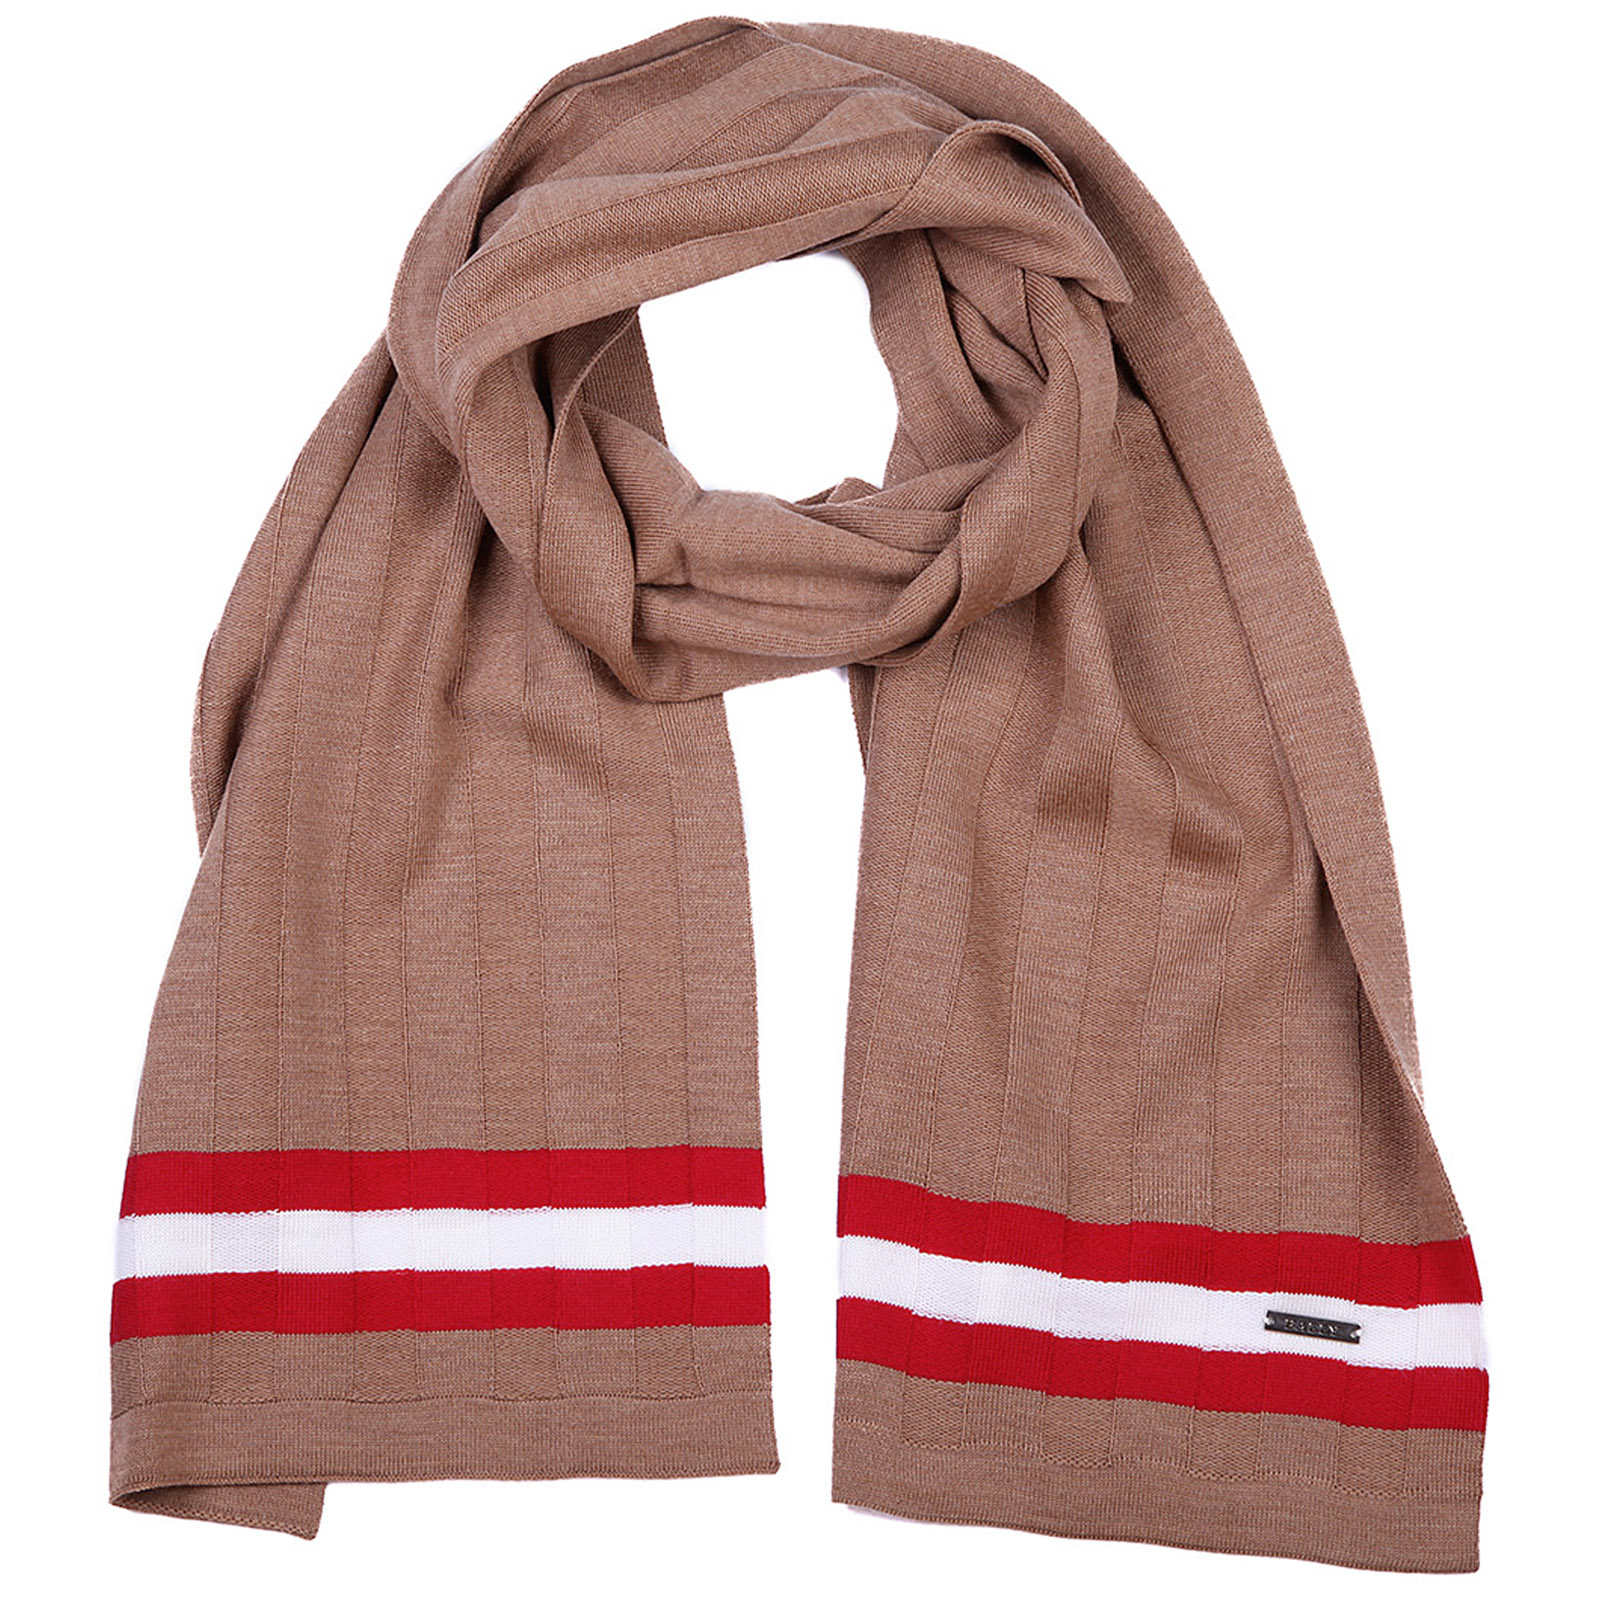 Men's wool scarf camel knits